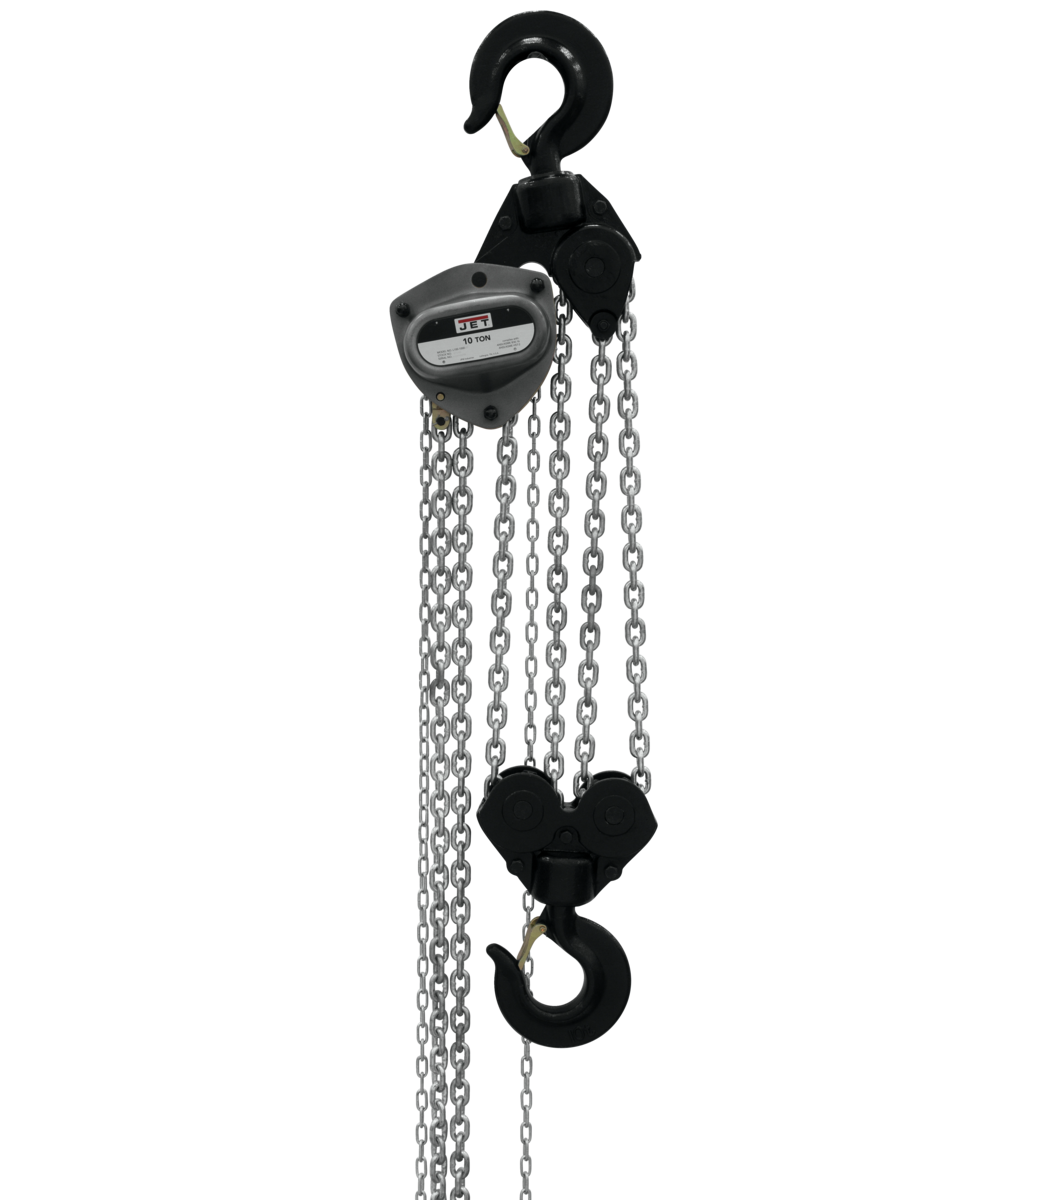 L-100-1000WO-30, 10-Ton Hand Chain Hoist With 30' Lift & Overload Protection